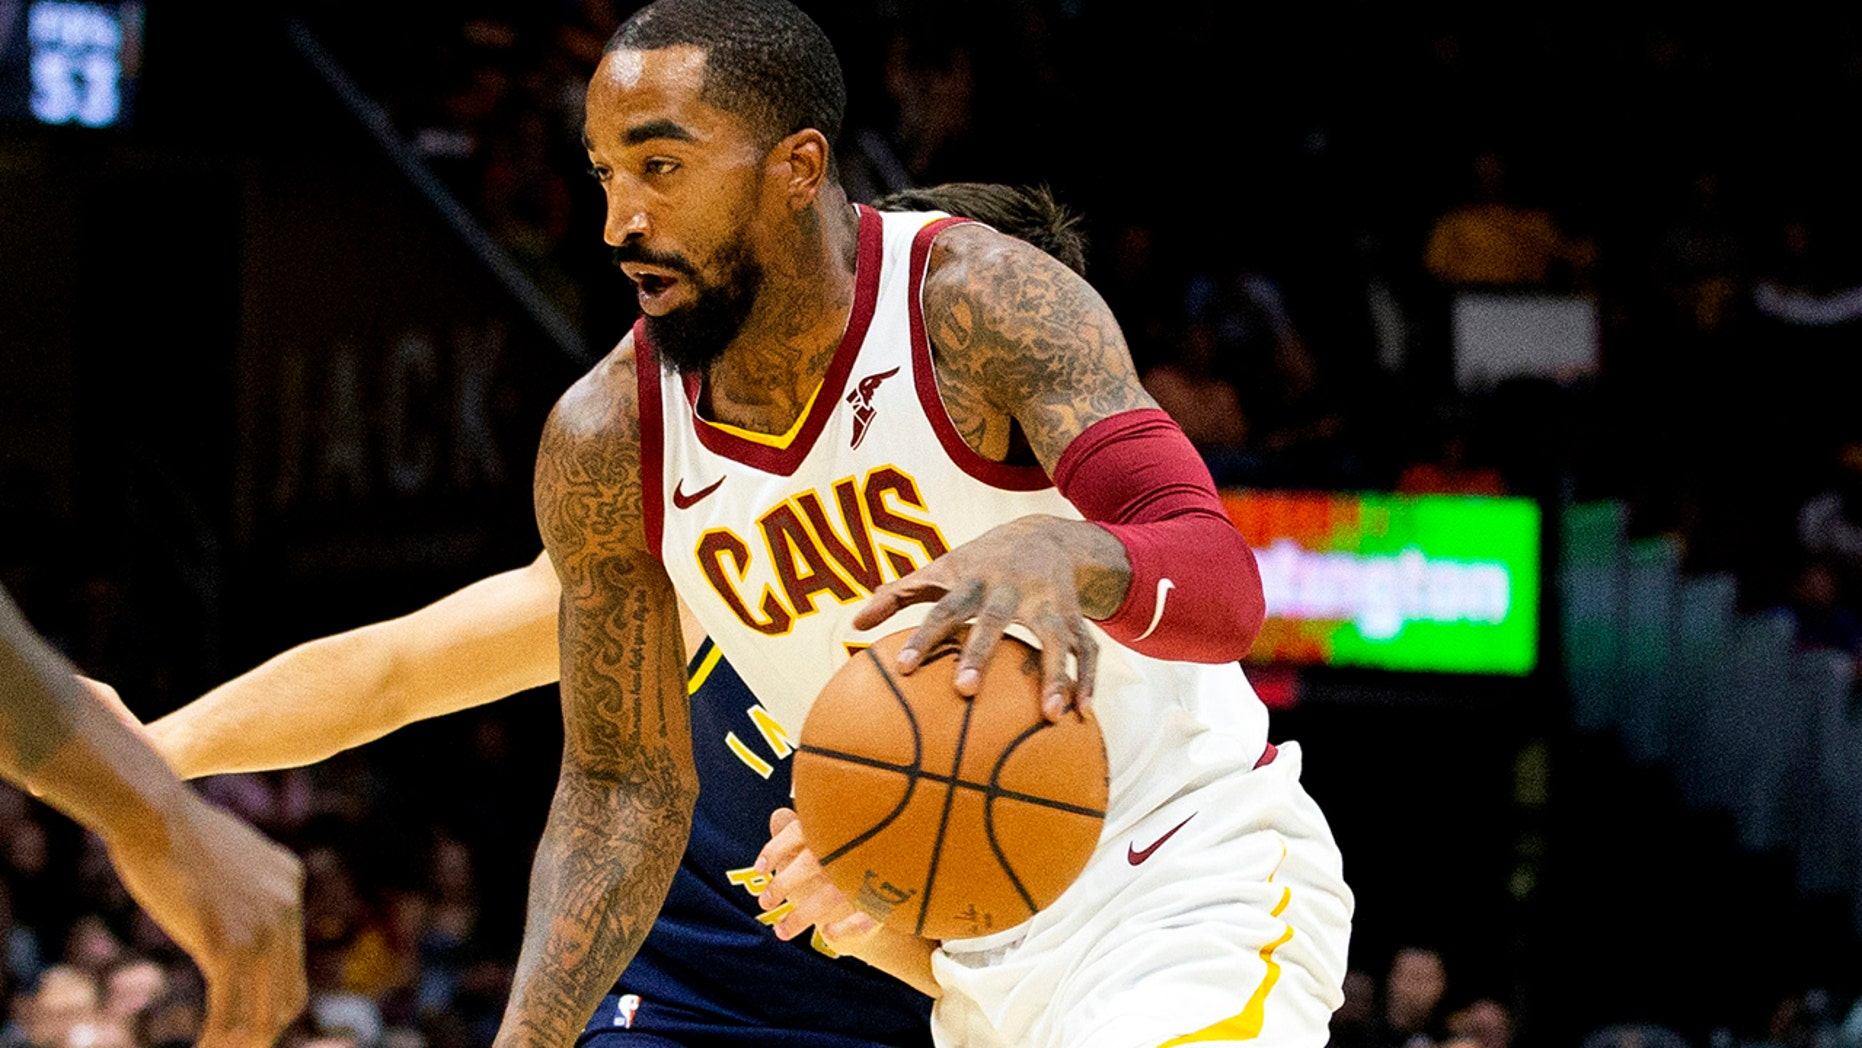 NBA's Cavs waive veteran JR Smith